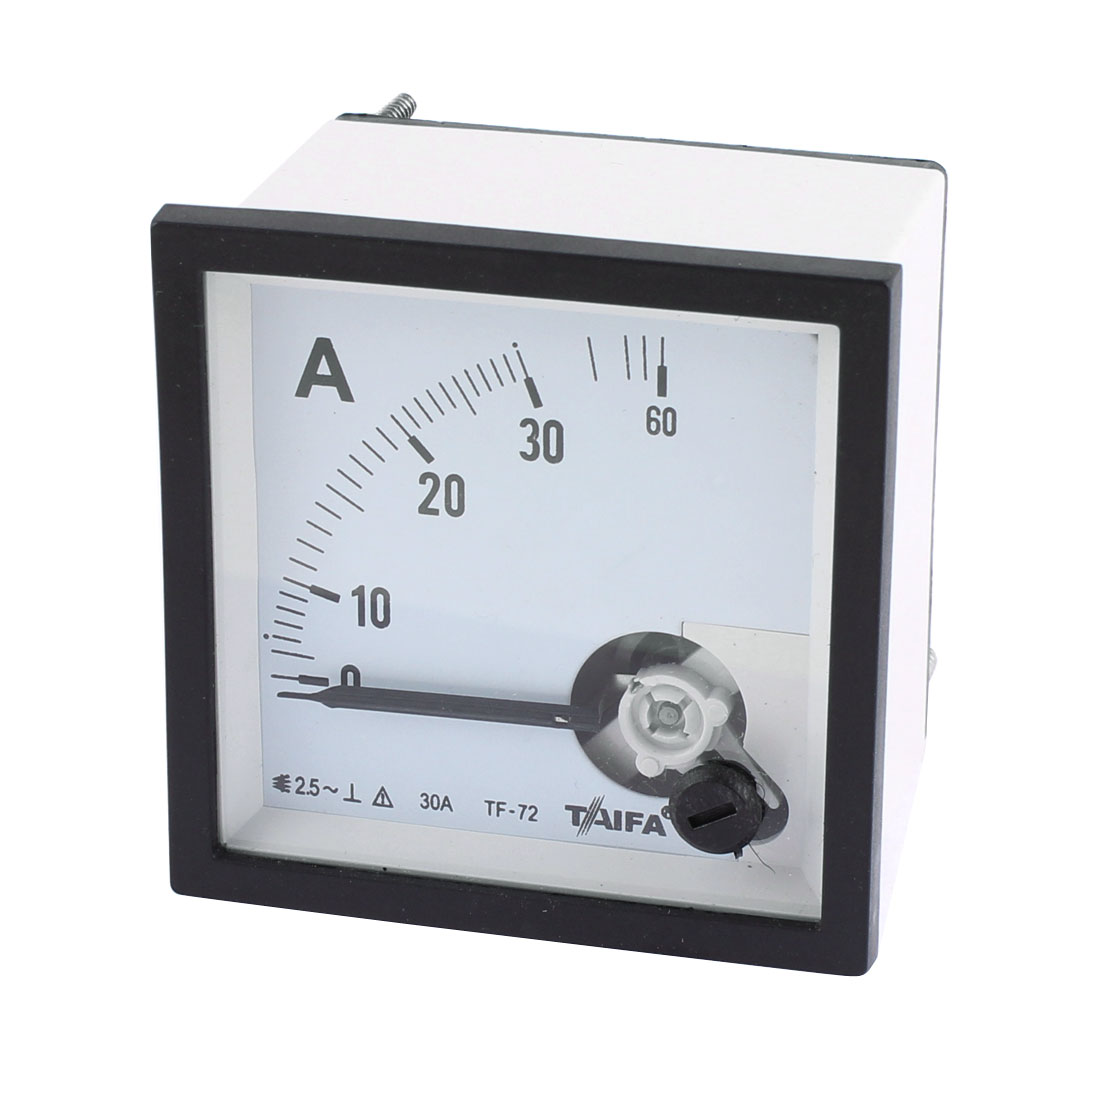 AC 0-30A Class 1.5 Accuracy Current Testing Panel Meter Analog Ammeter